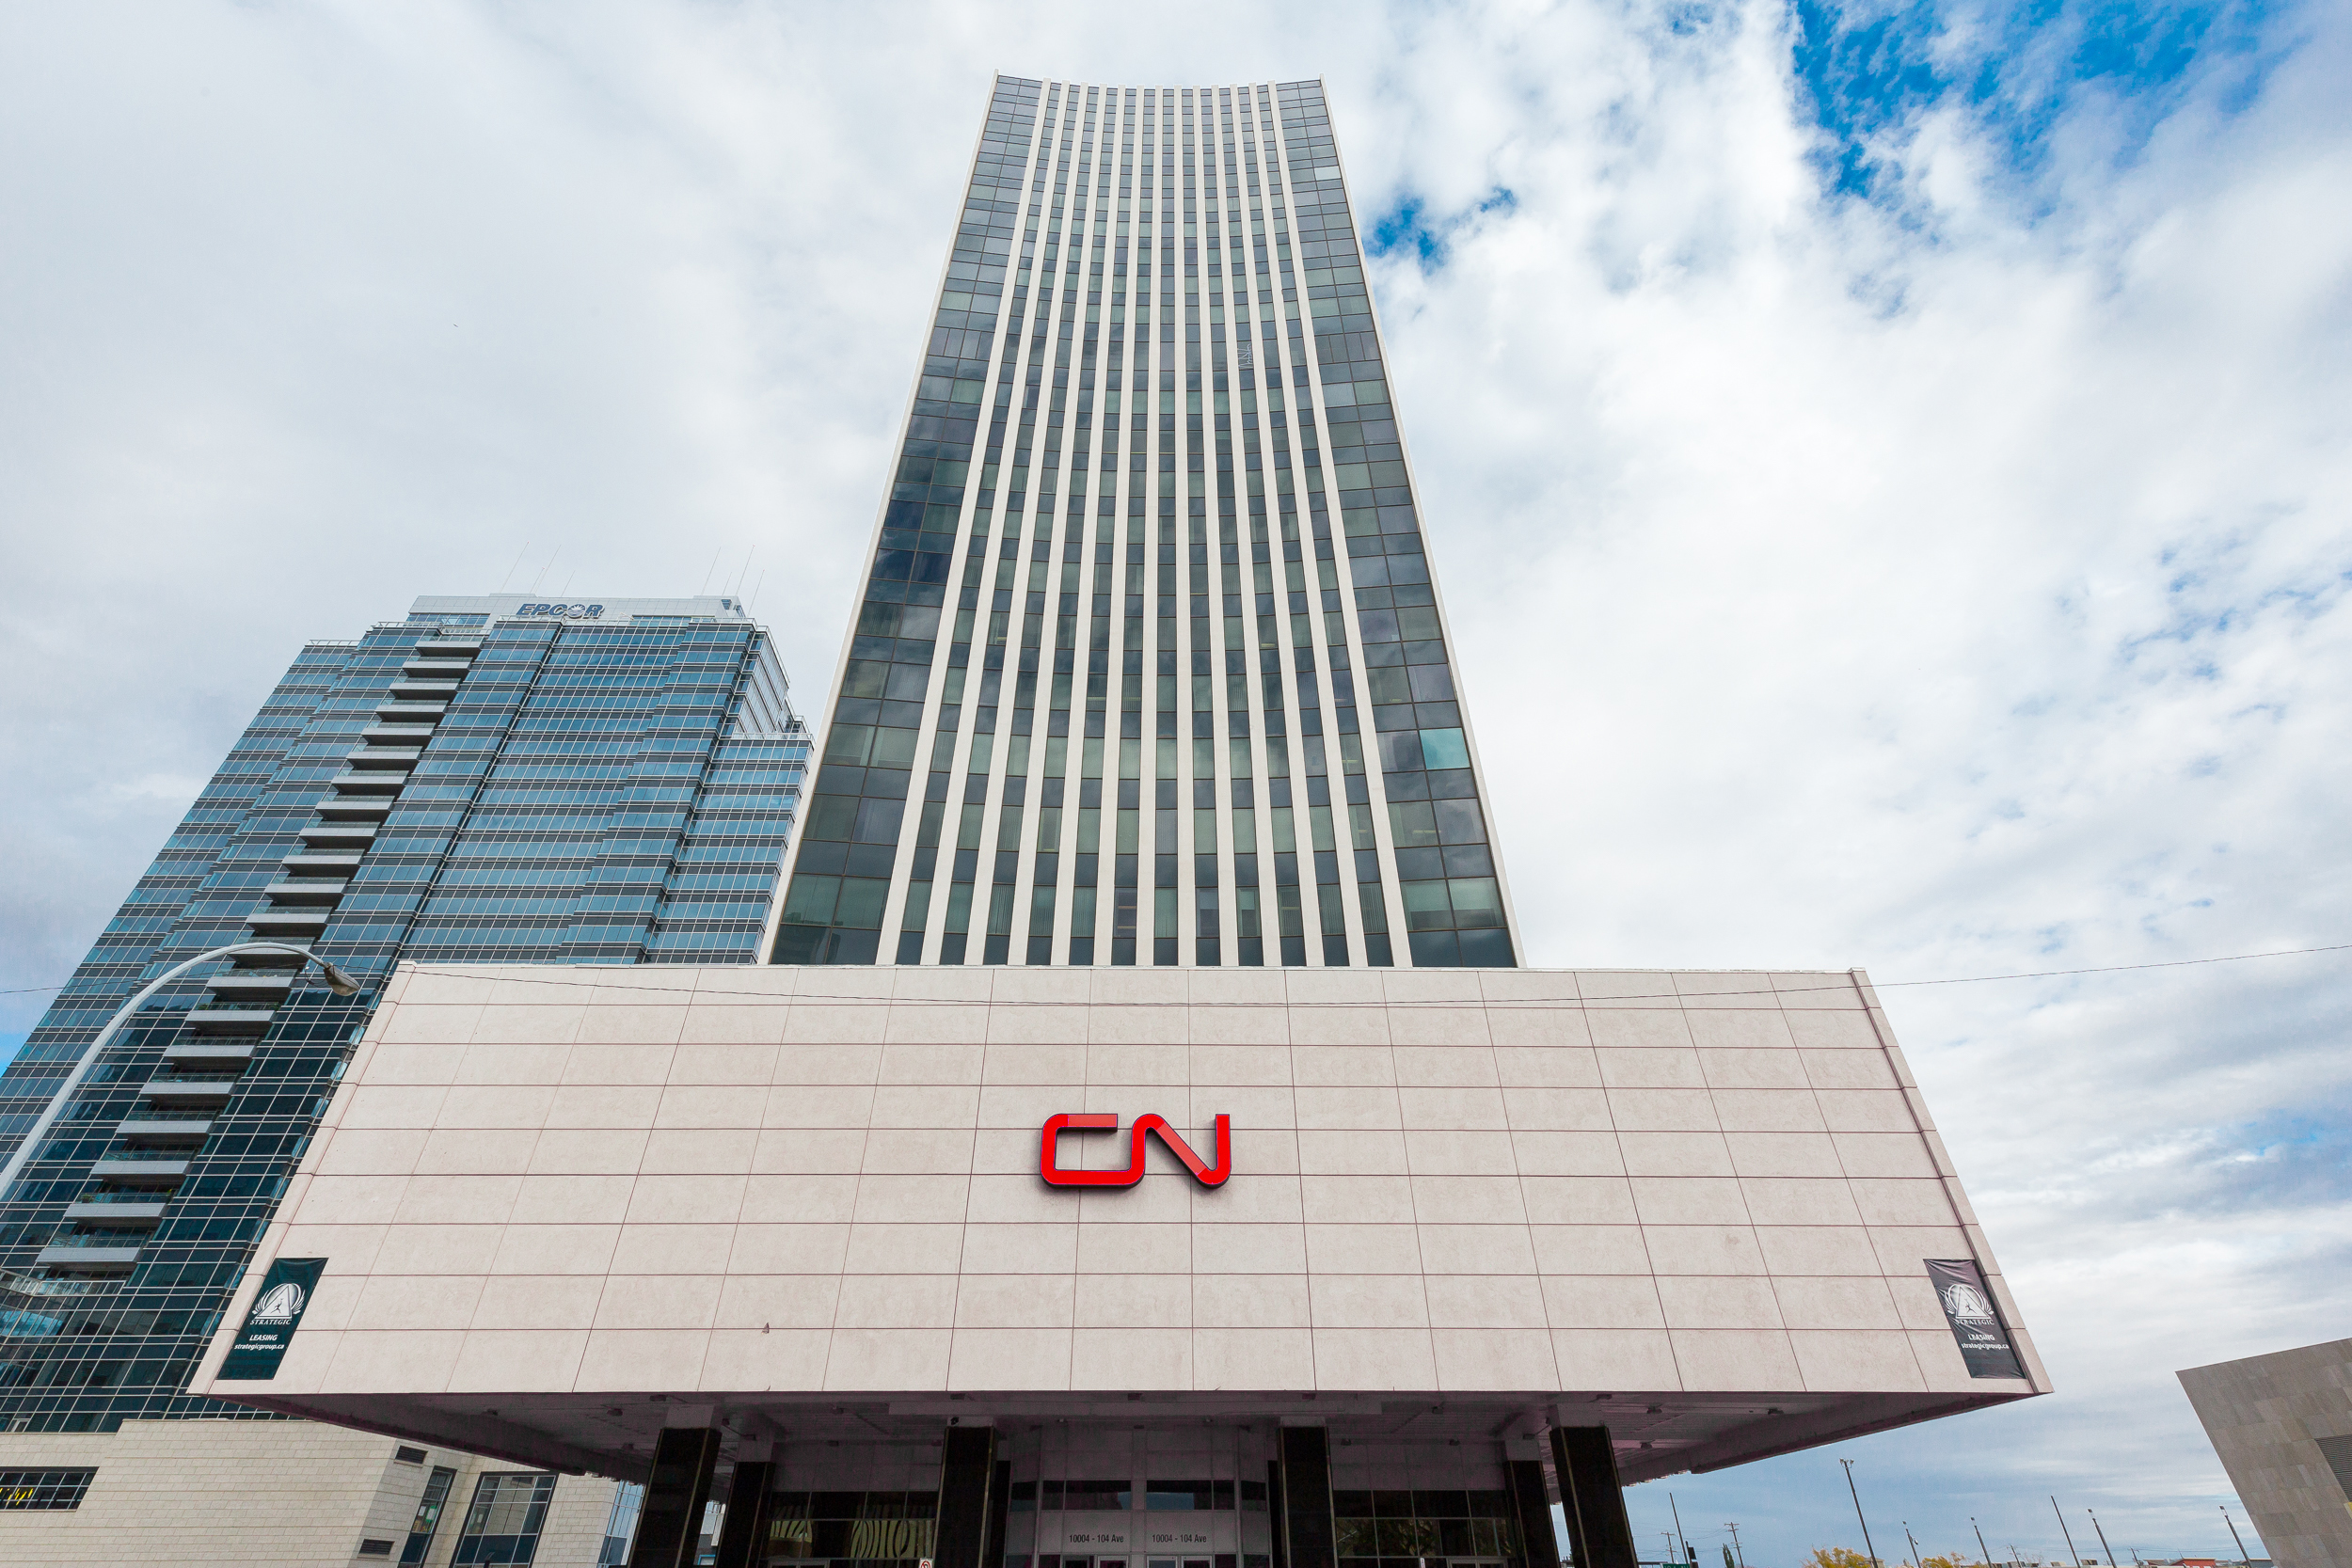 1400 CN Tower 10004 104 Avenue NW